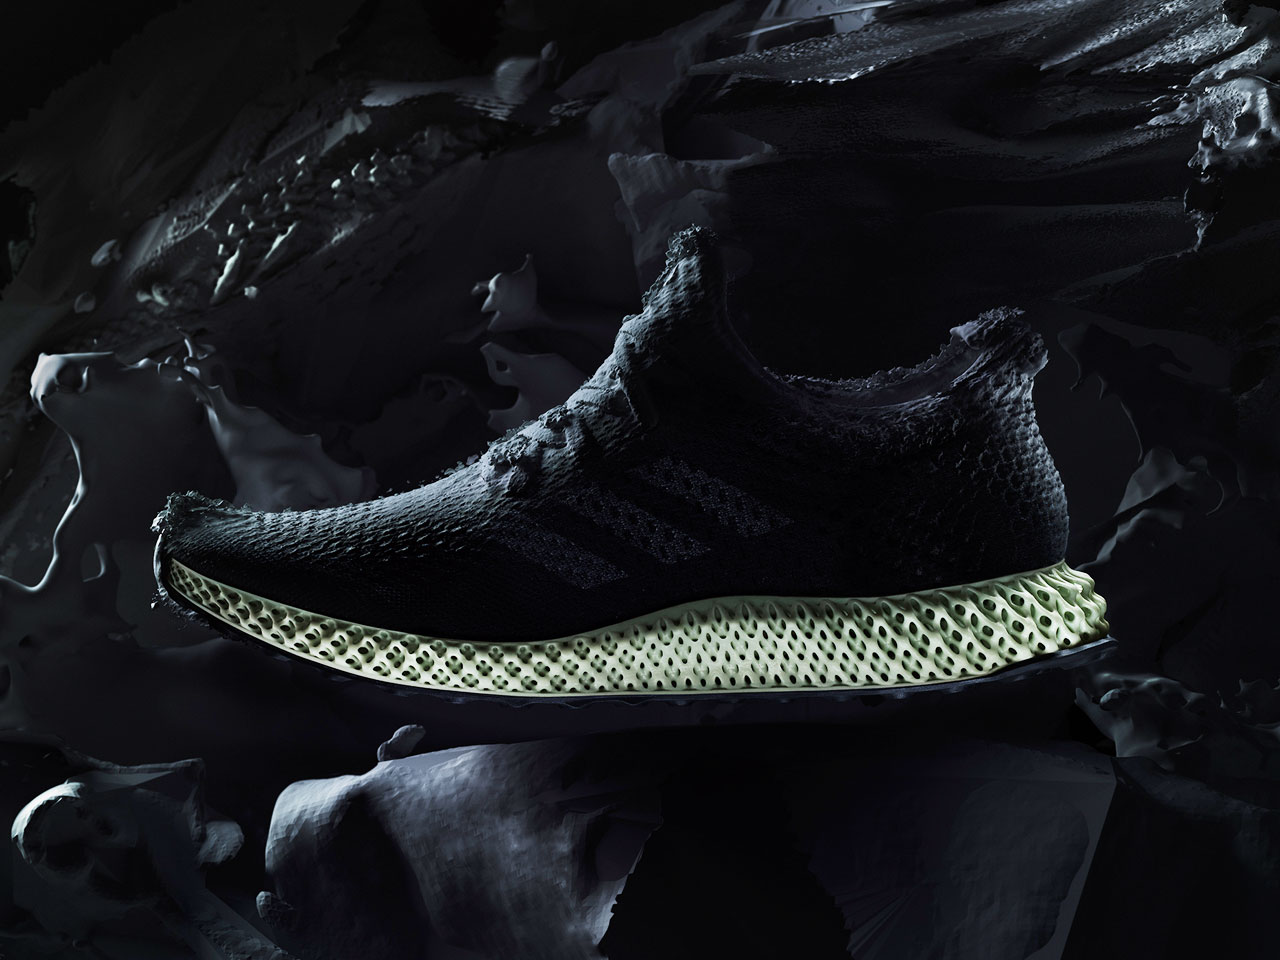 nett Meet the Futurecraft 4D, Adidas' 3D printed shoe that looks